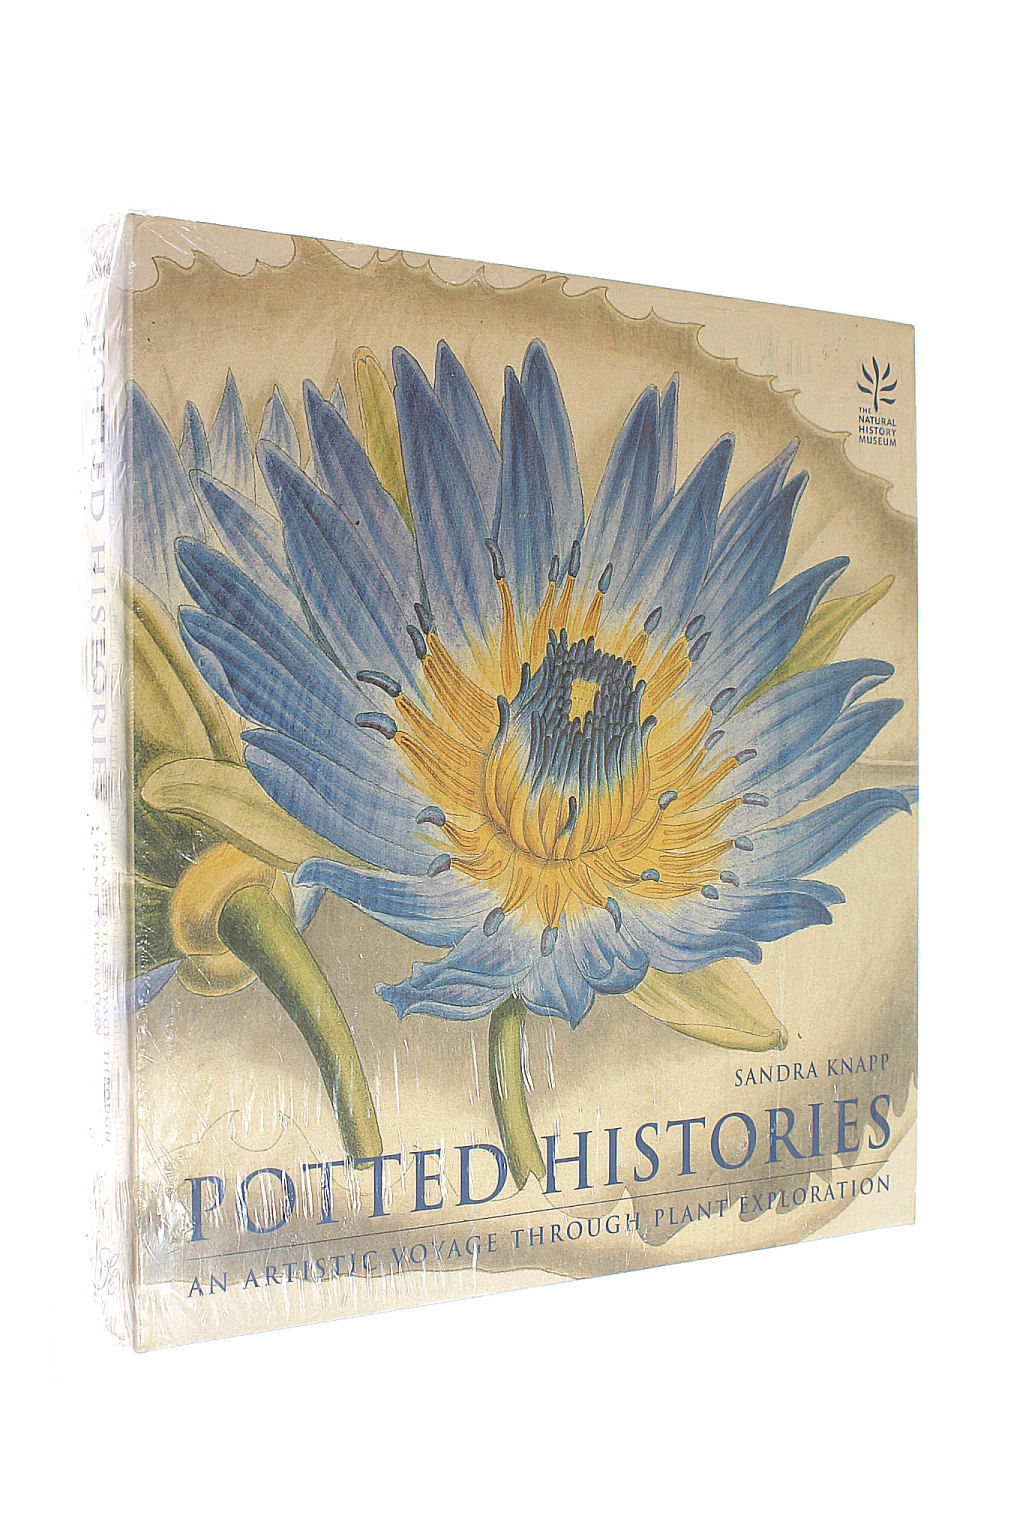 Image for Potted Histories: An Artistic Voyage Through Plant Exploration